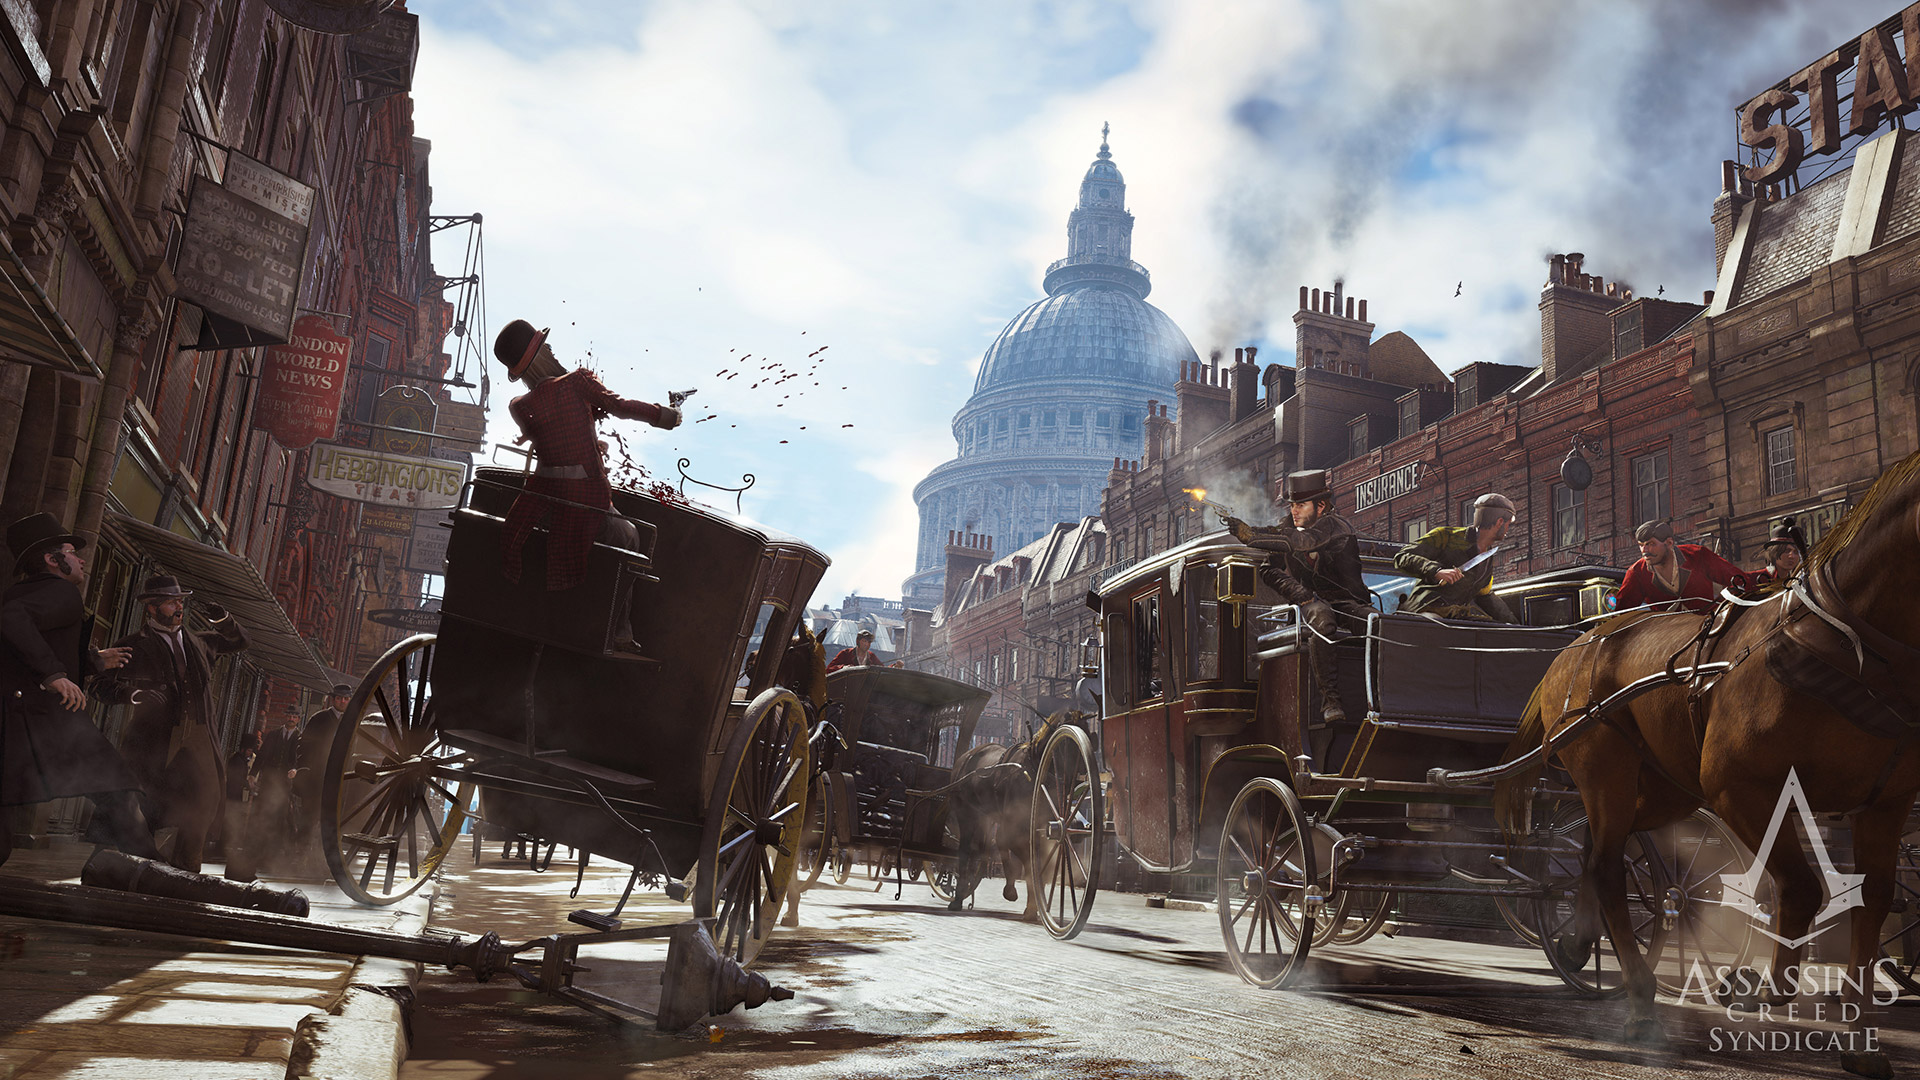 Assasins Creed Syndicate wallpaper 14